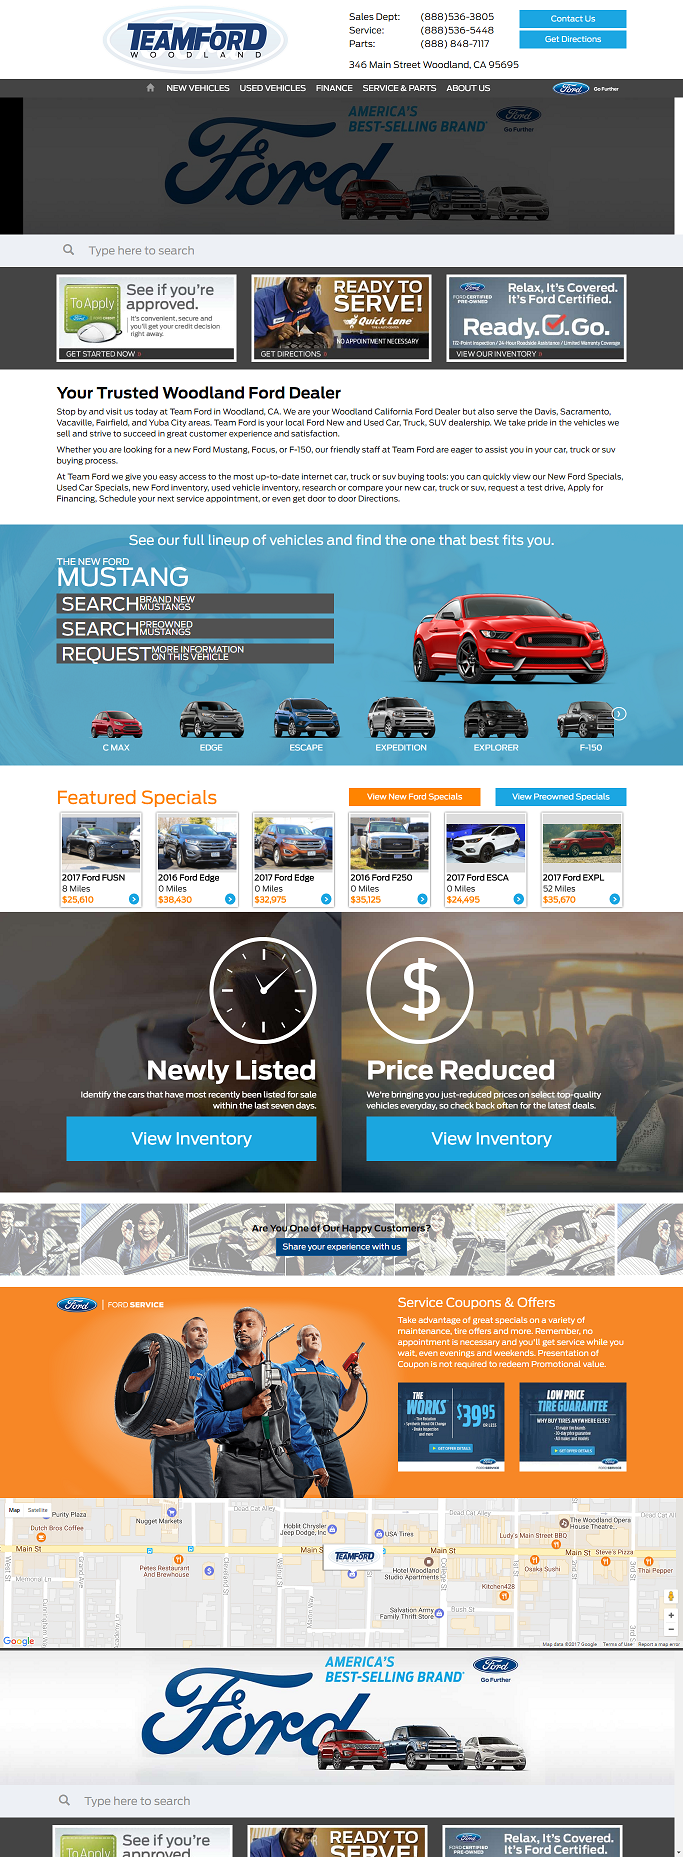 Teamford Woodland Are Woodland California Ford Dealer But Also